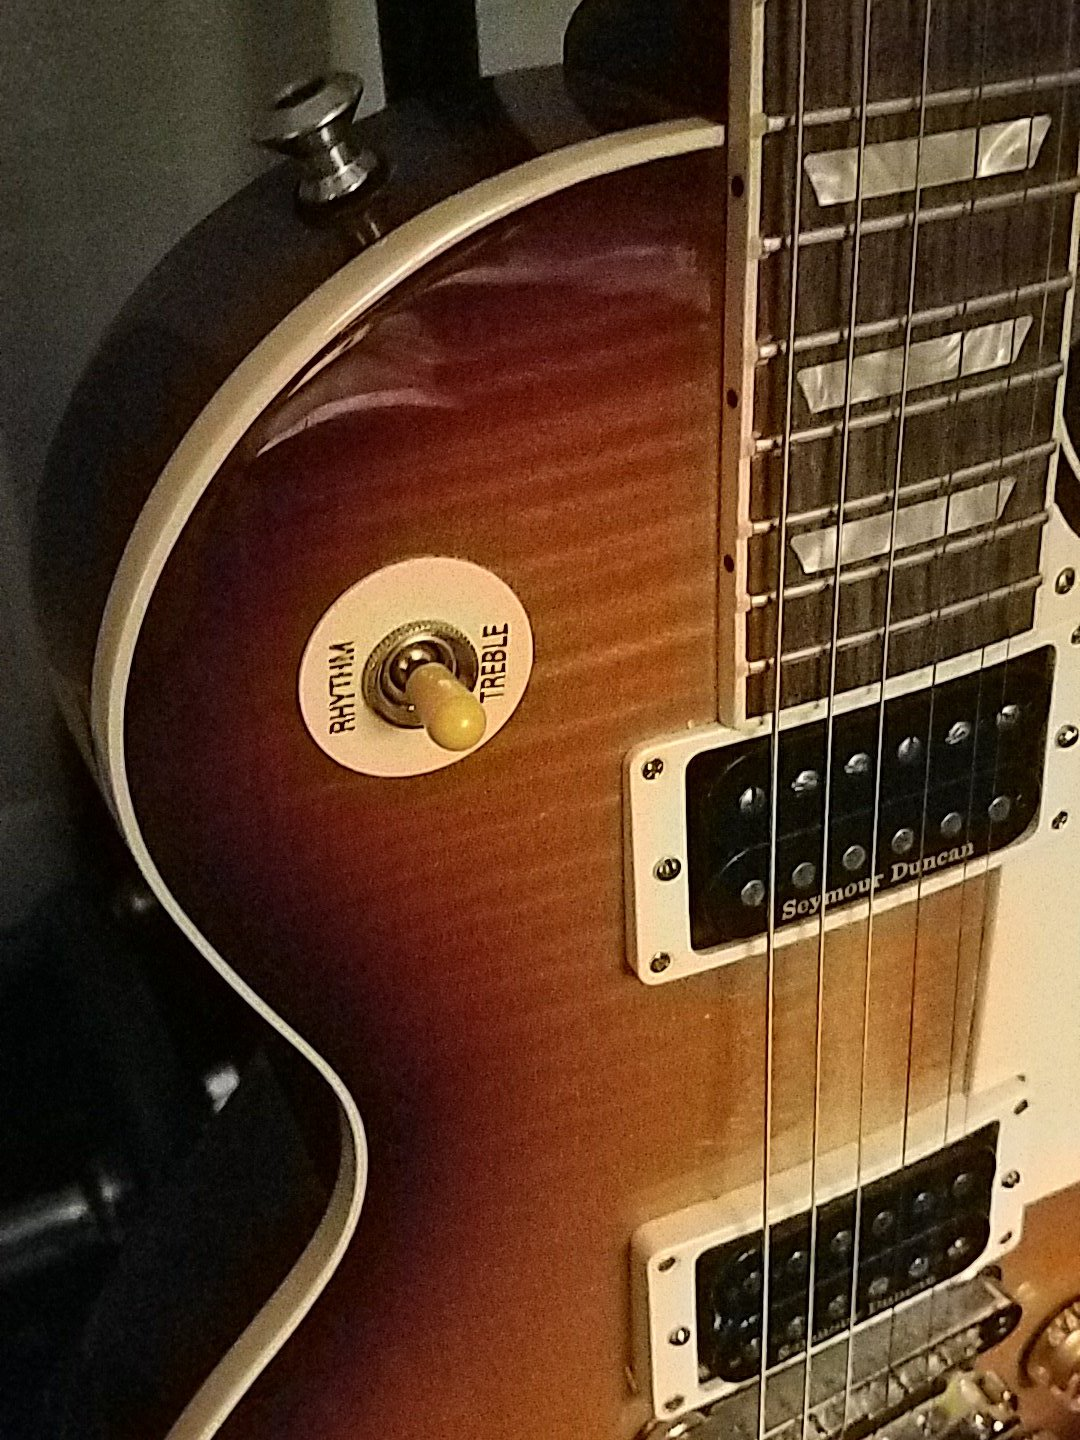 A Good Les Paul Priceless Audio Systems Also Gibson 335 Guitar Wiring Diagrams As Well 1 It Is Amazing How That Plays And Sounds Whenever I Hear The Bashing Just Laugh Look Across Room At My Baby